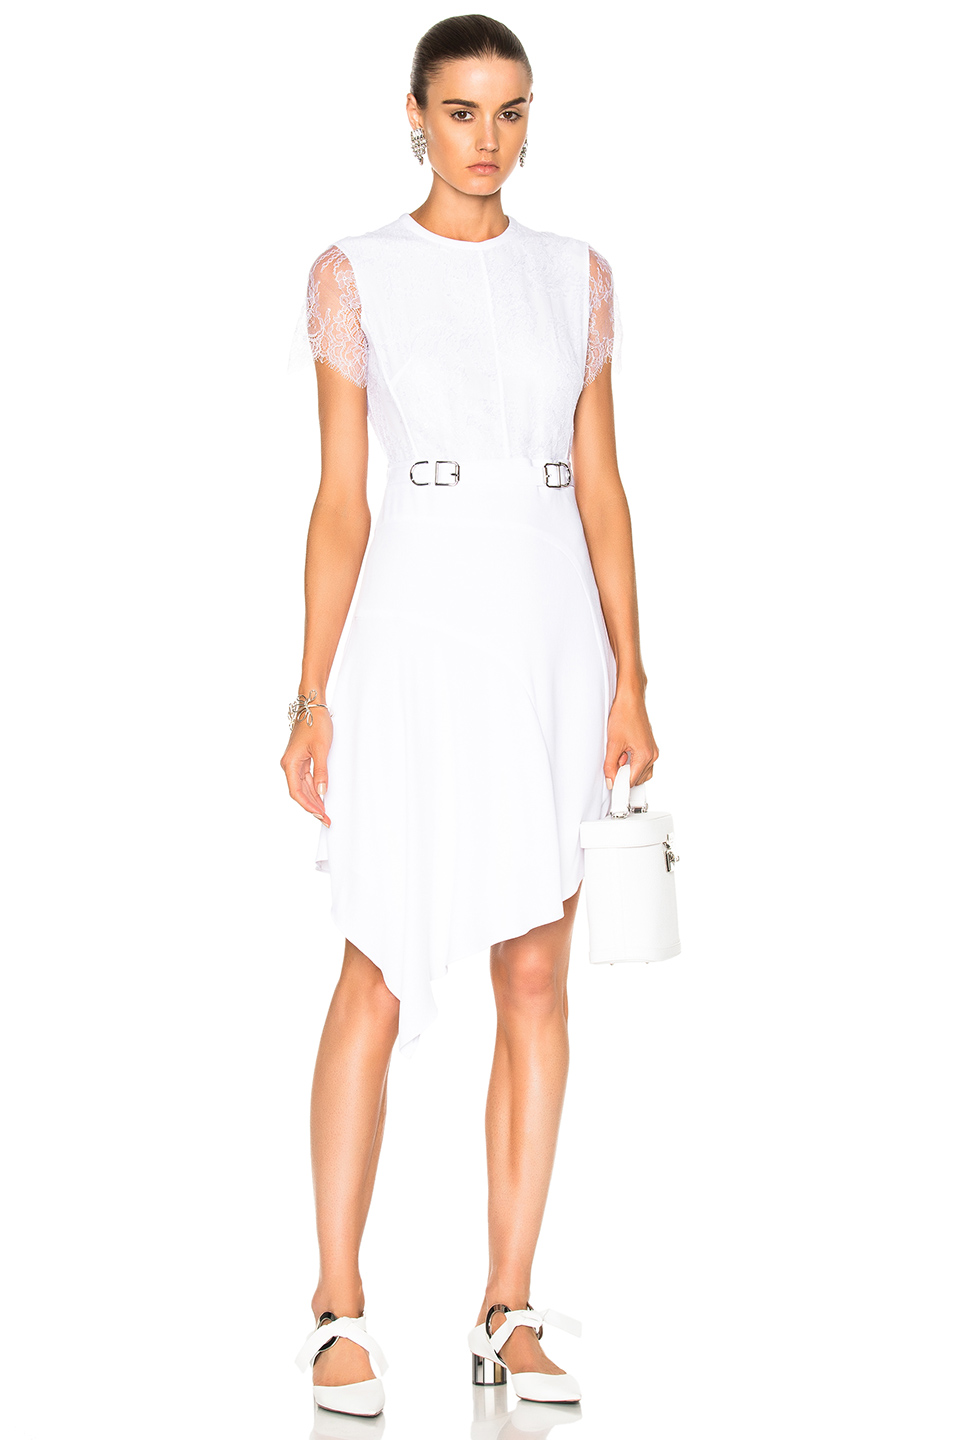 Photo of Carven Short Sleeve Dress in White online sales